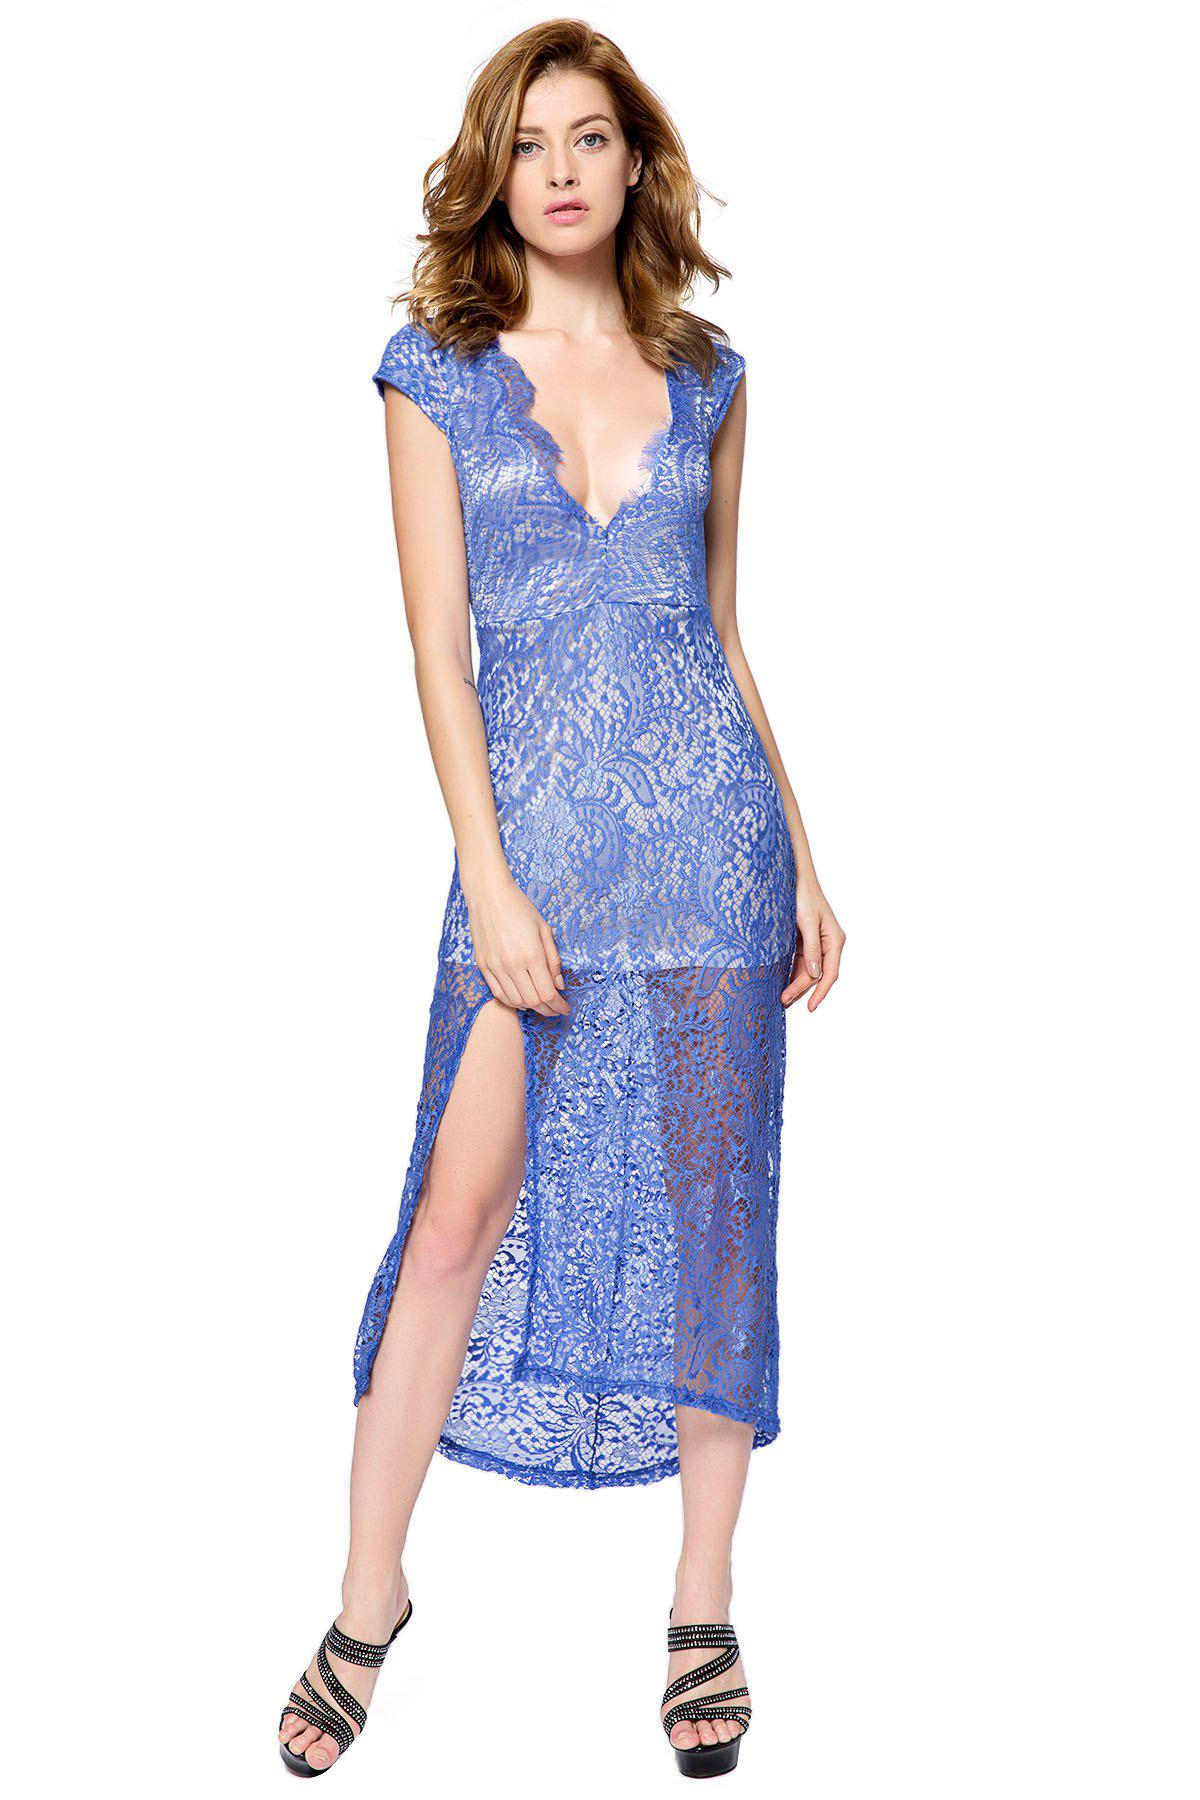 Sexy Plunging Neck Short Sleeve Spliced High-Furcal Backless Women's Dress - BLUE M